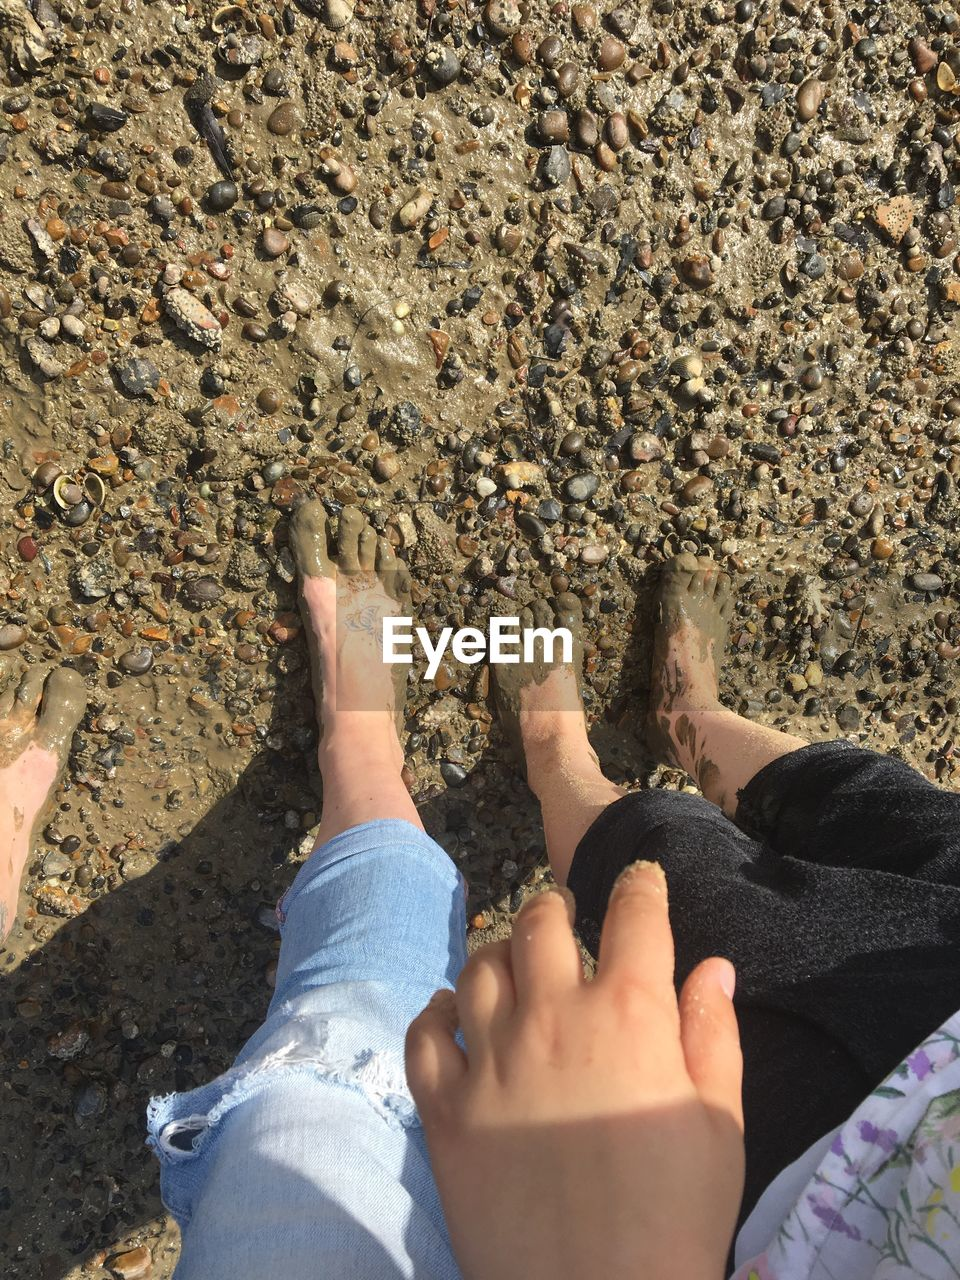 low section, body part, human body part, real people, human leg, personal perspective, high angle view, day, leisure activity, lifestyles, nature, barefoot, land, sunlight, beach, unrecognizable person, outdoors, human foot, hand, finger, pebble, gravel